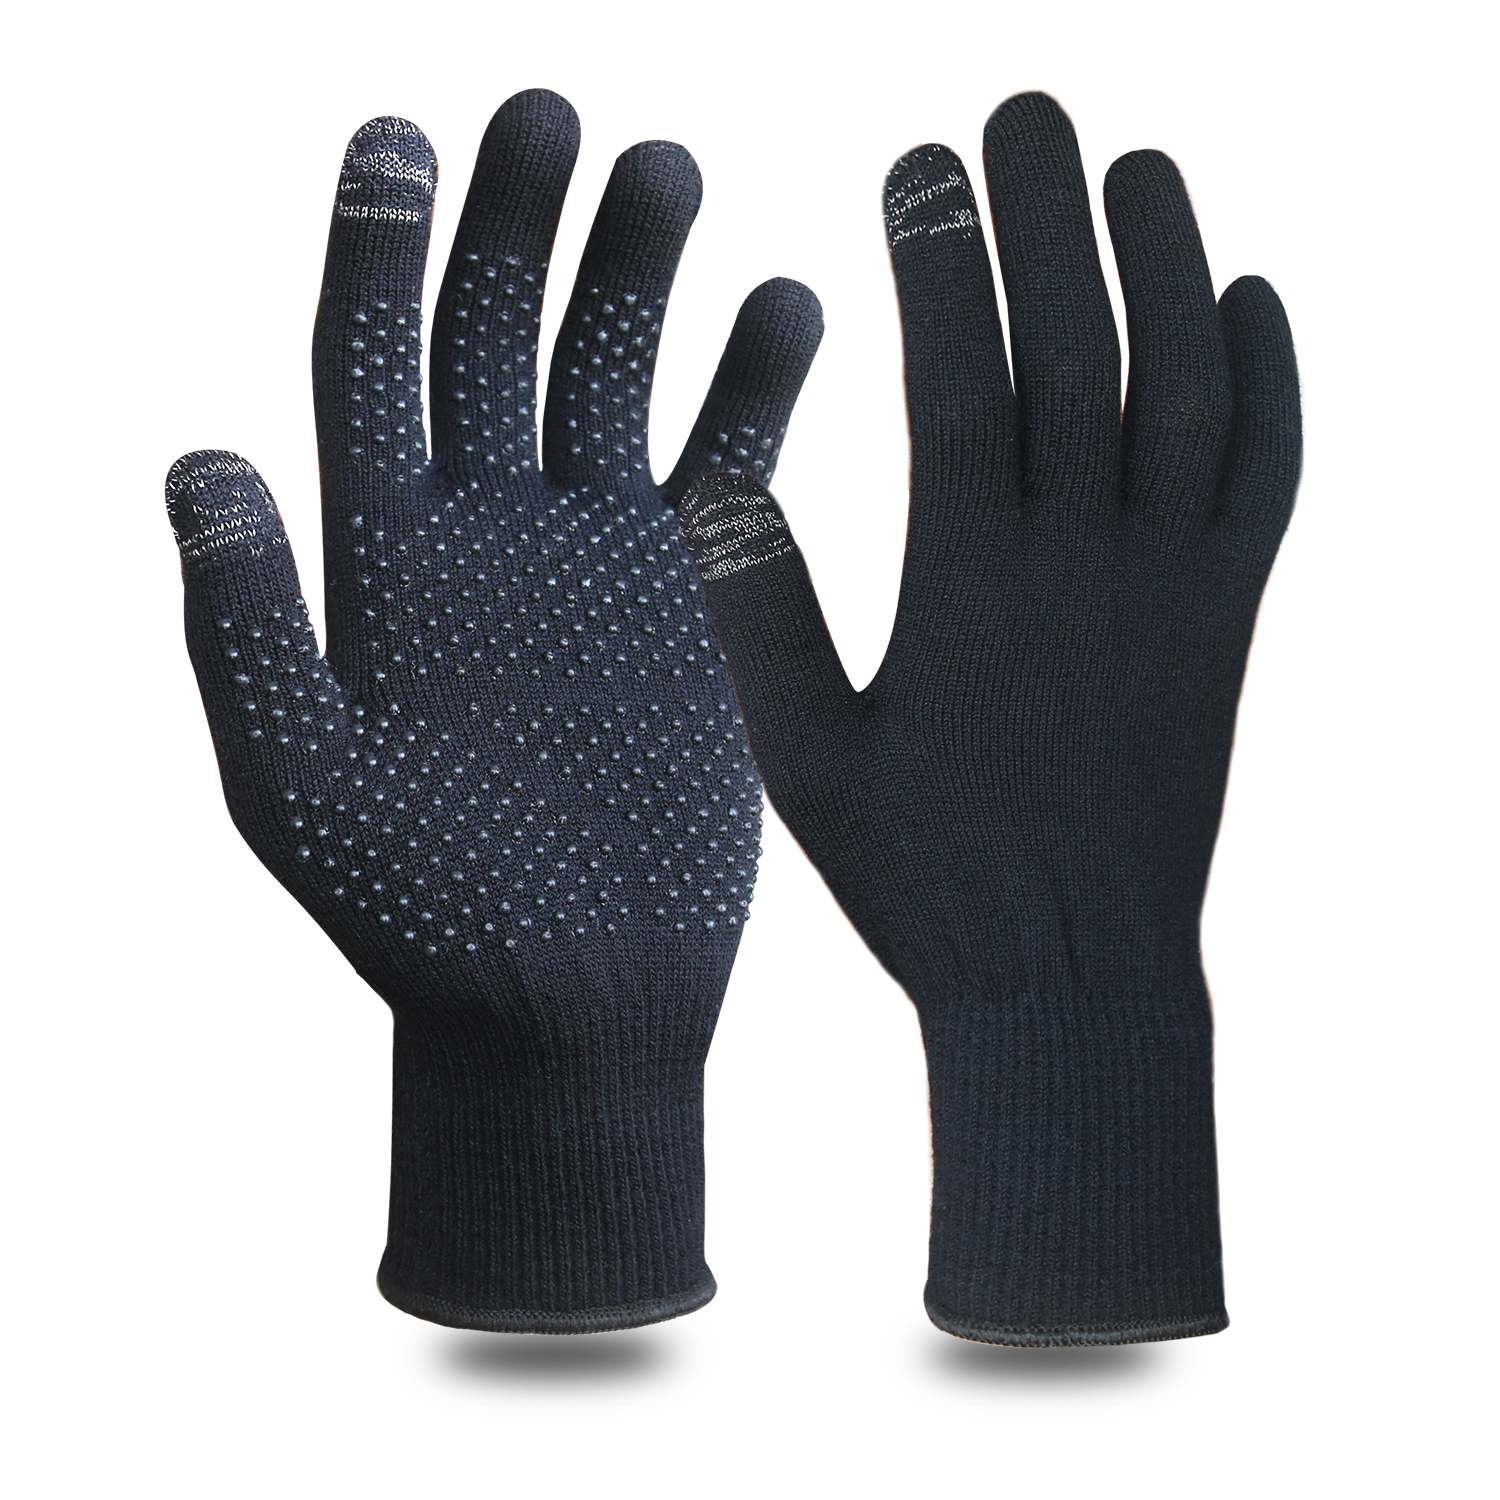 13G Merino Wool Yarn Glove with PVC Dots on palm/MWG-010